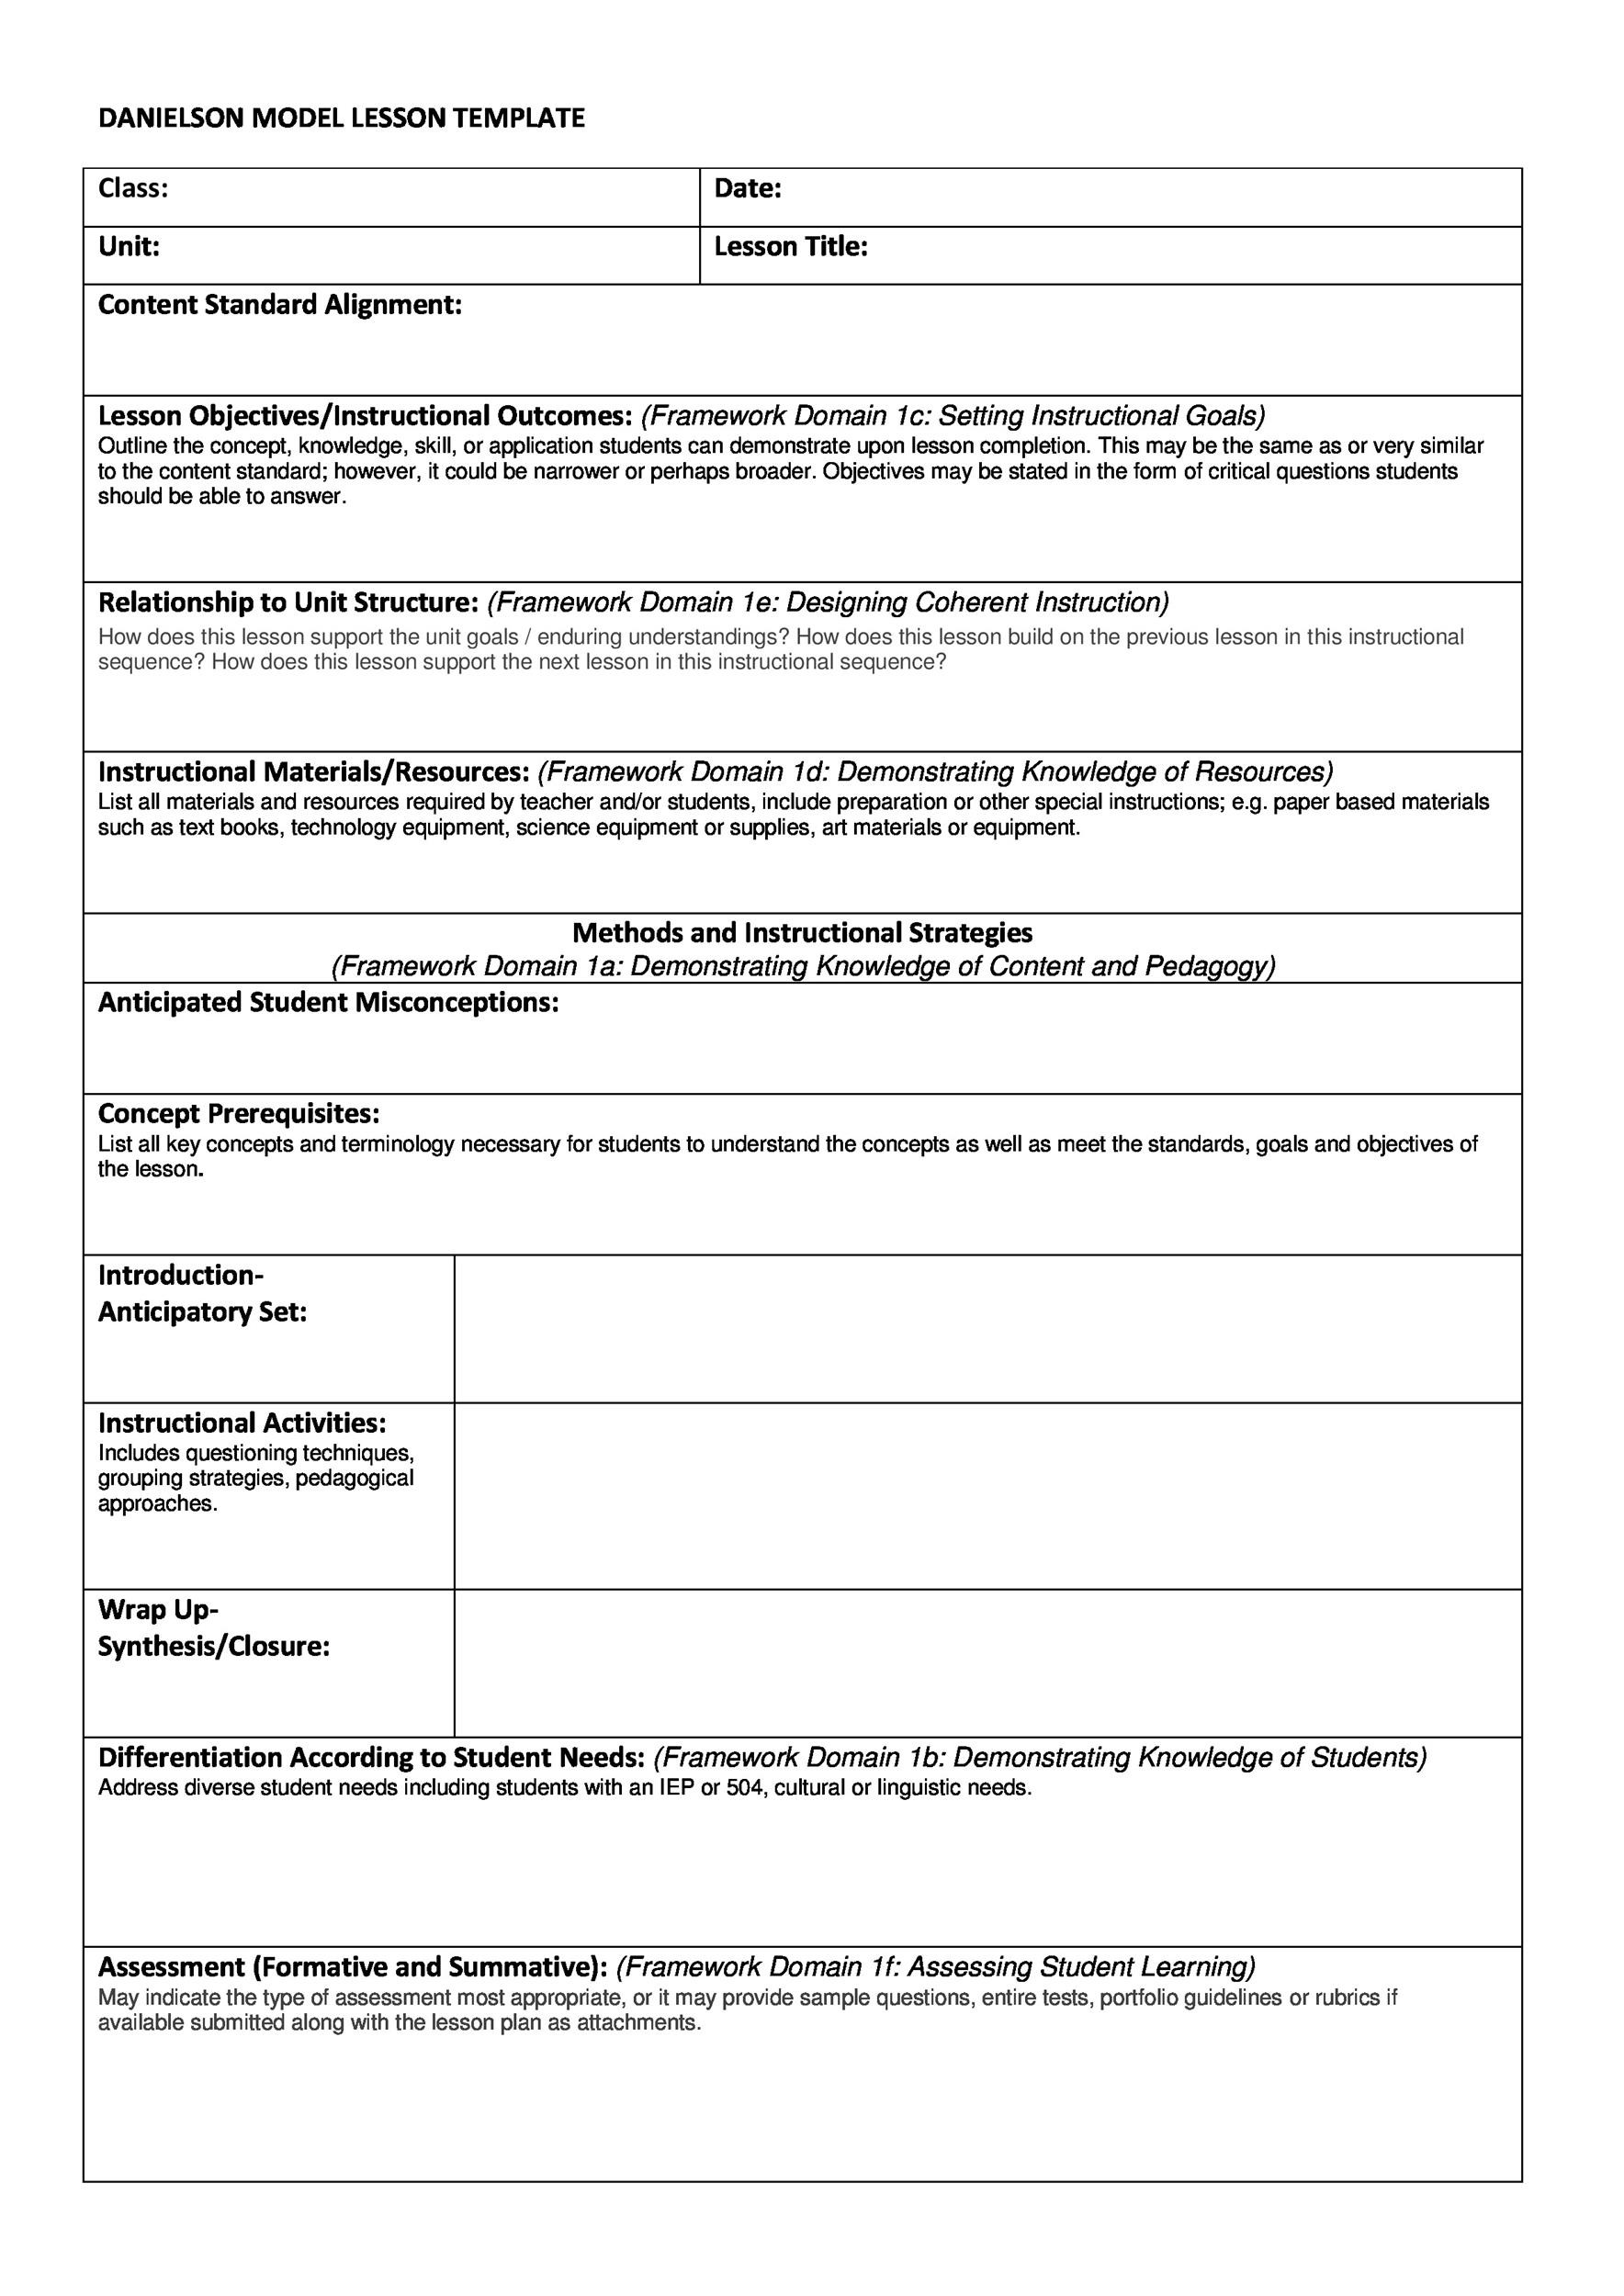 photo regarding Preschool Assessment Forms Free Printable identified as 44 Free of charge Lesson Method Templates [Preferred Main, Preschool, Weekly]